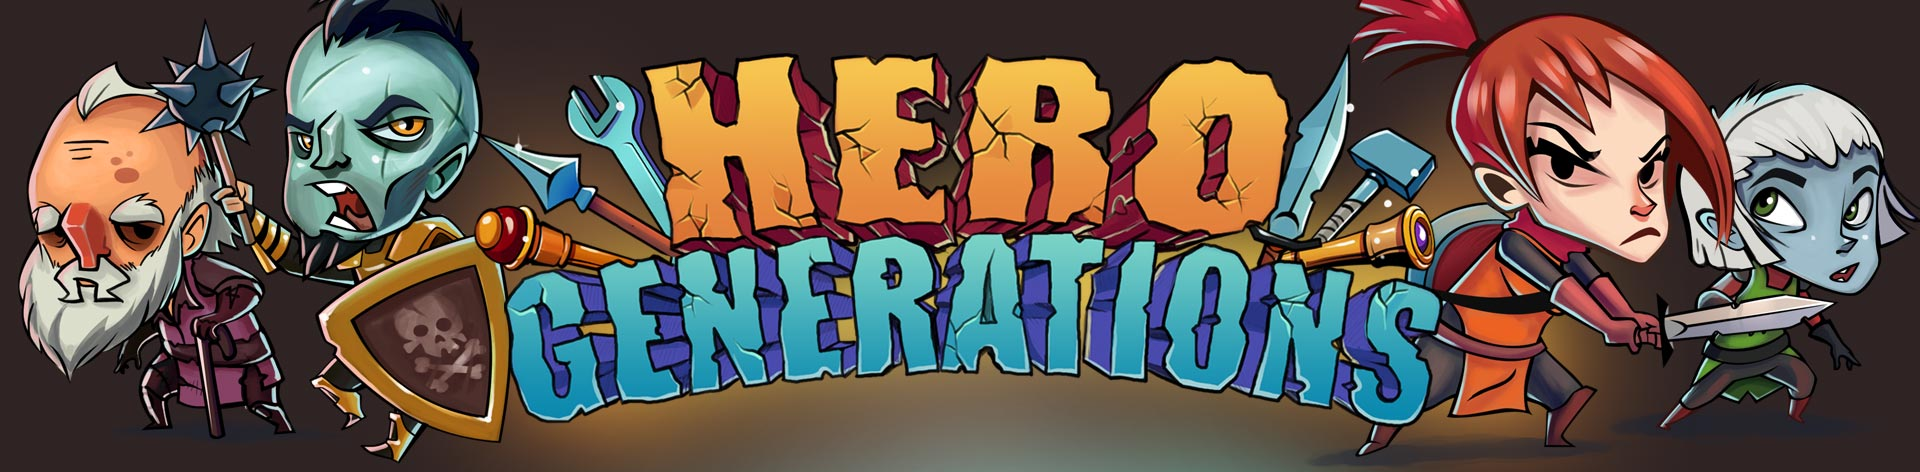 Hero Generations Banner Image